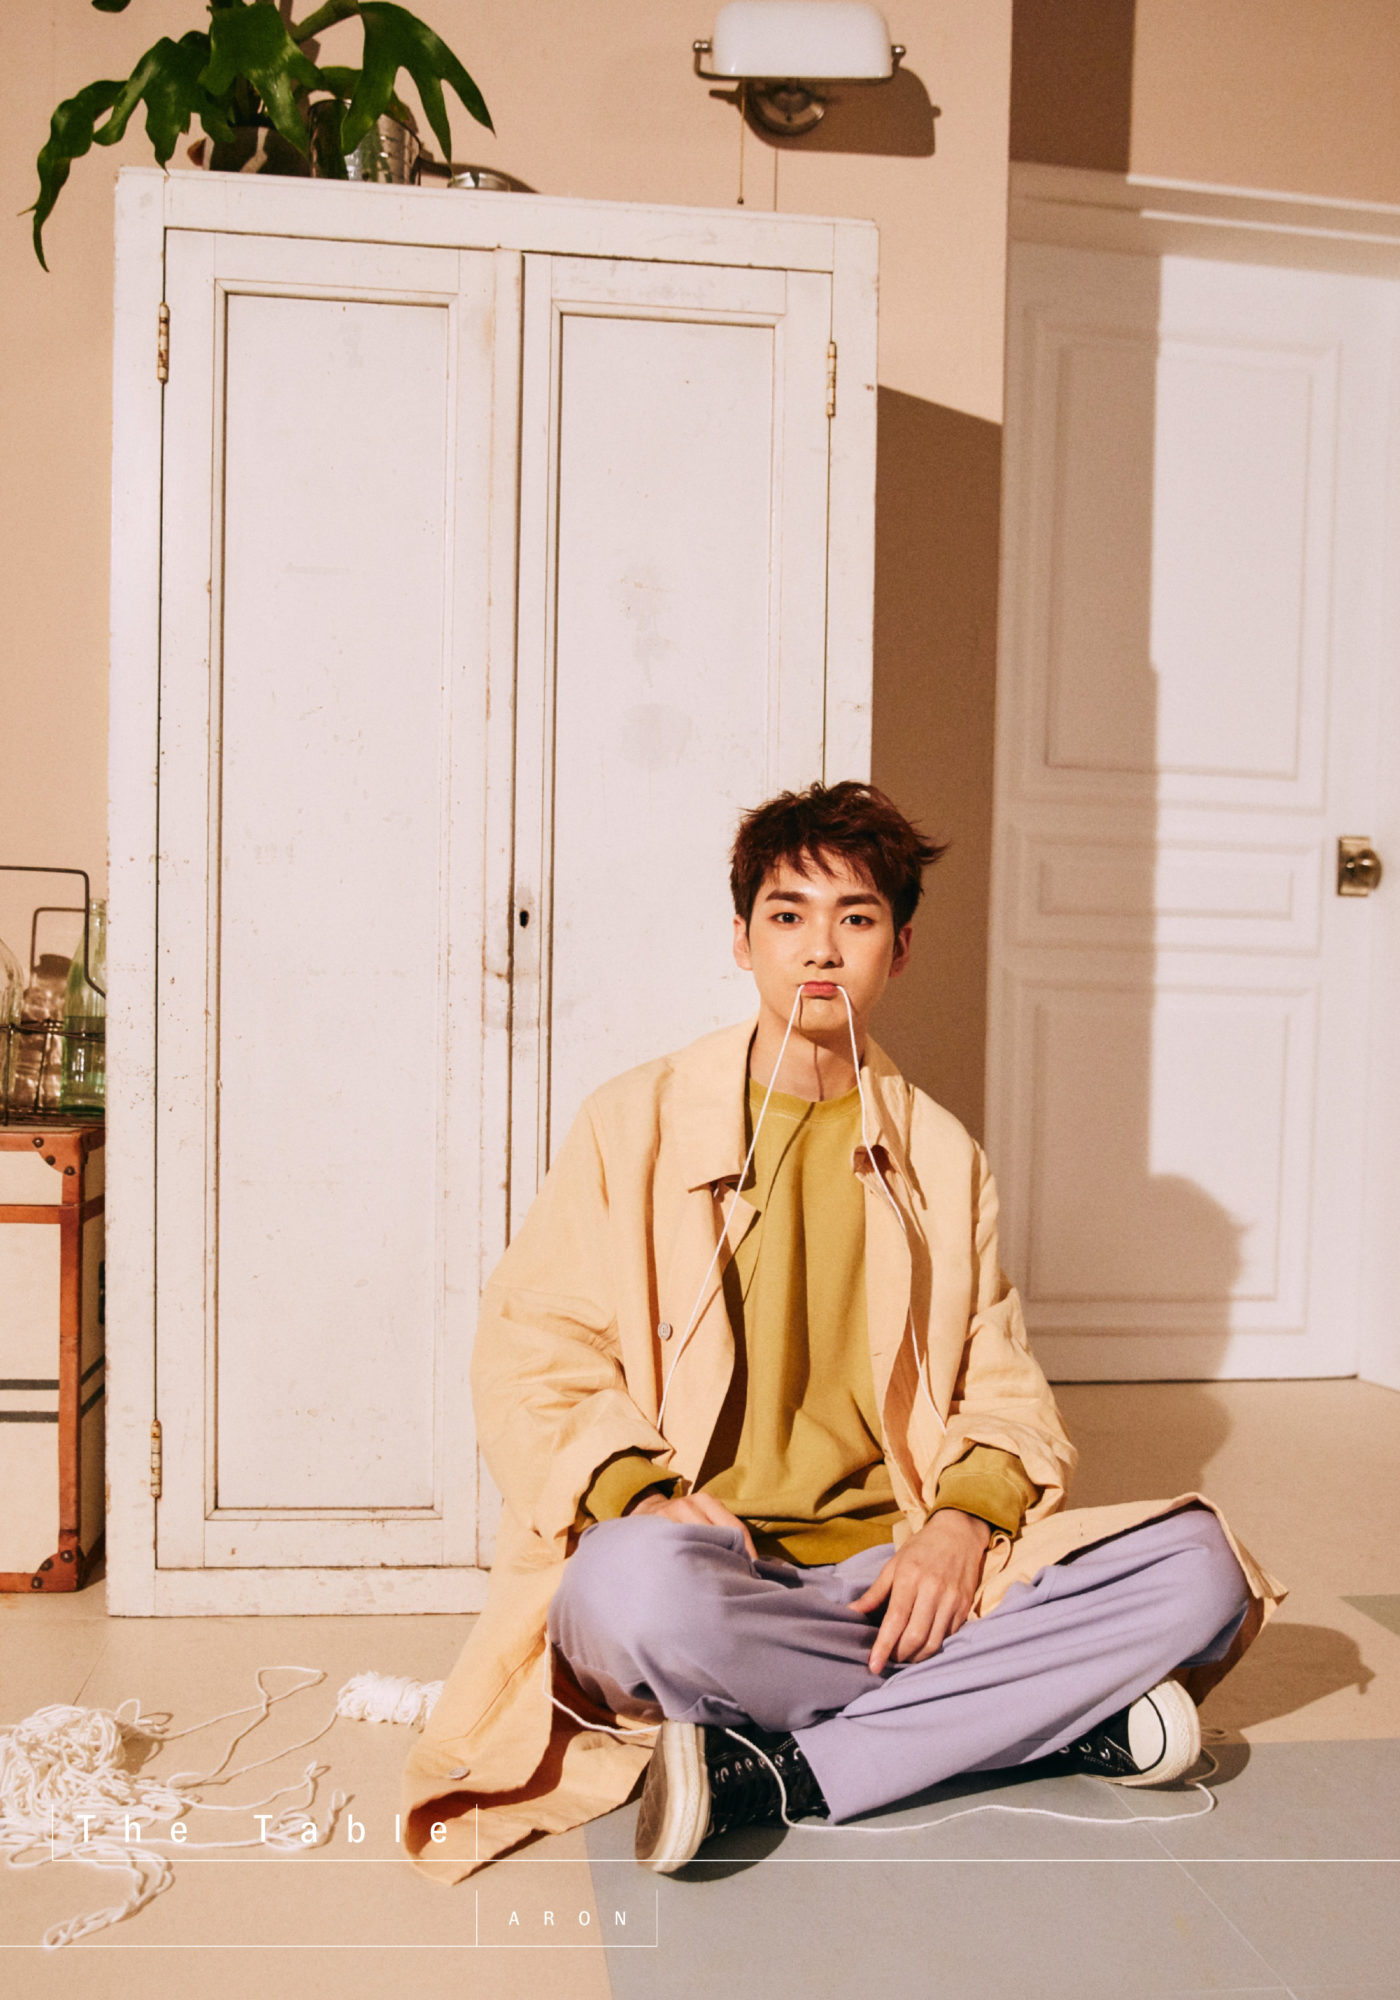 NU'EST Aron The Table Concept